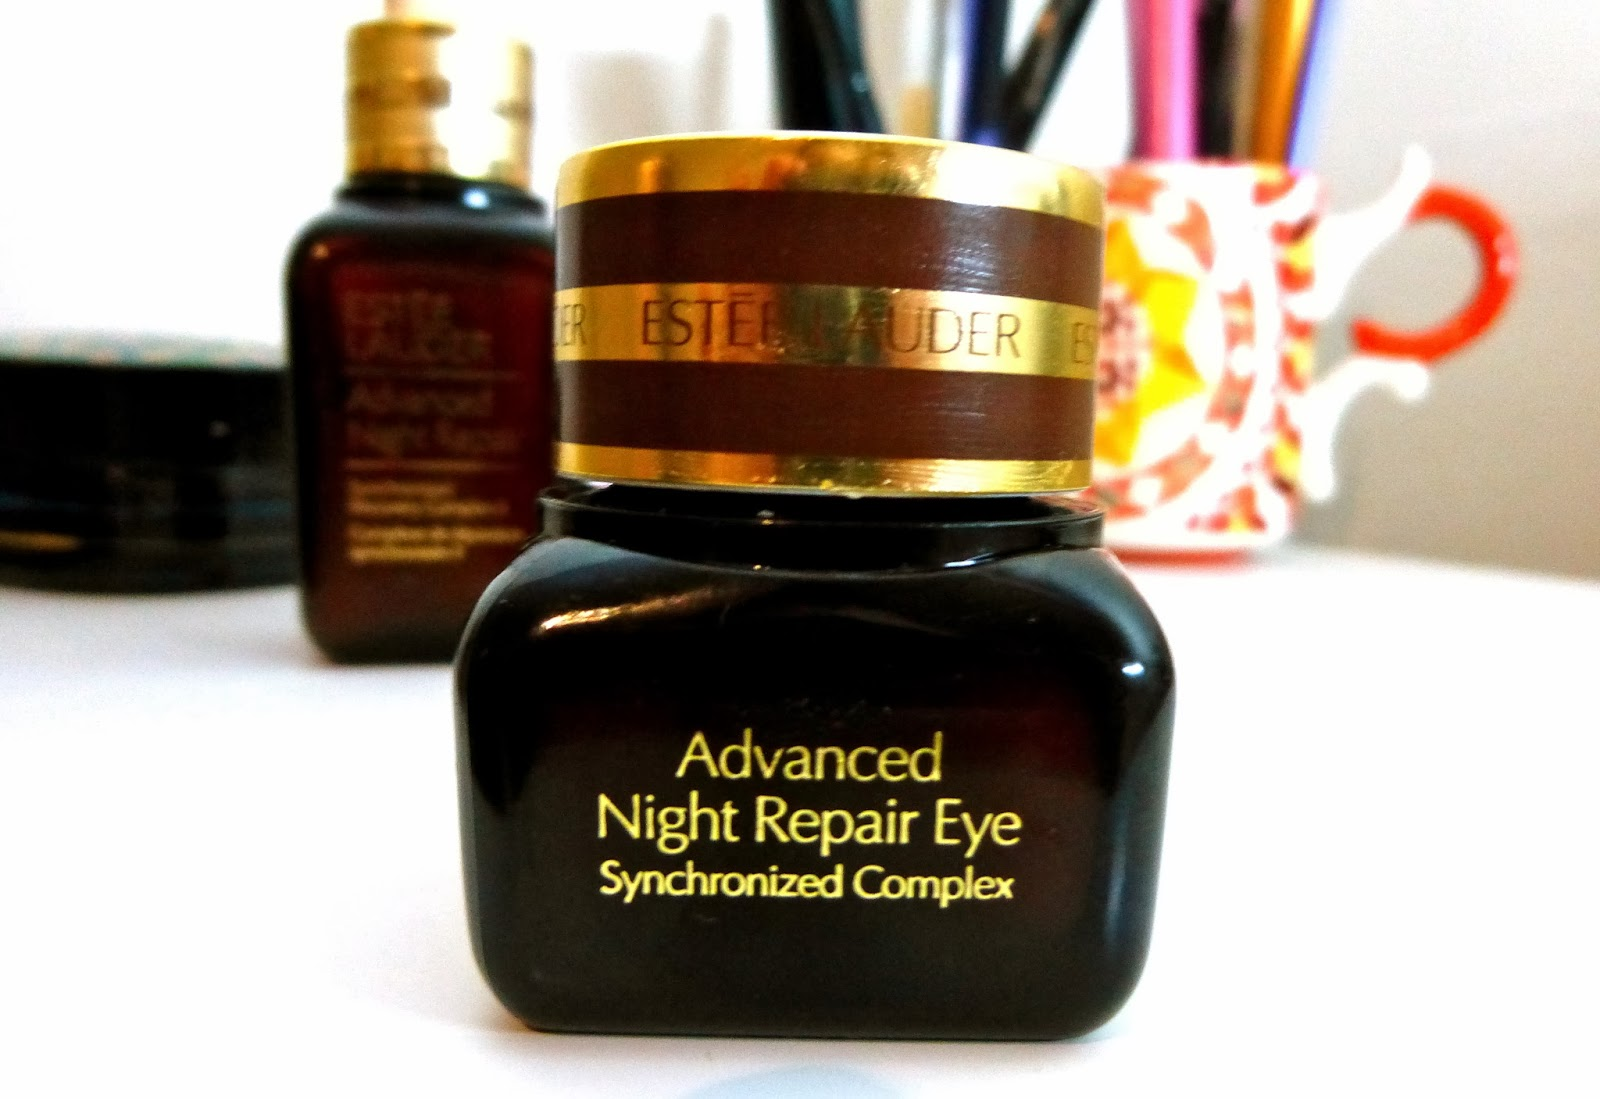 Estee Lauder ANR Eye Recovery